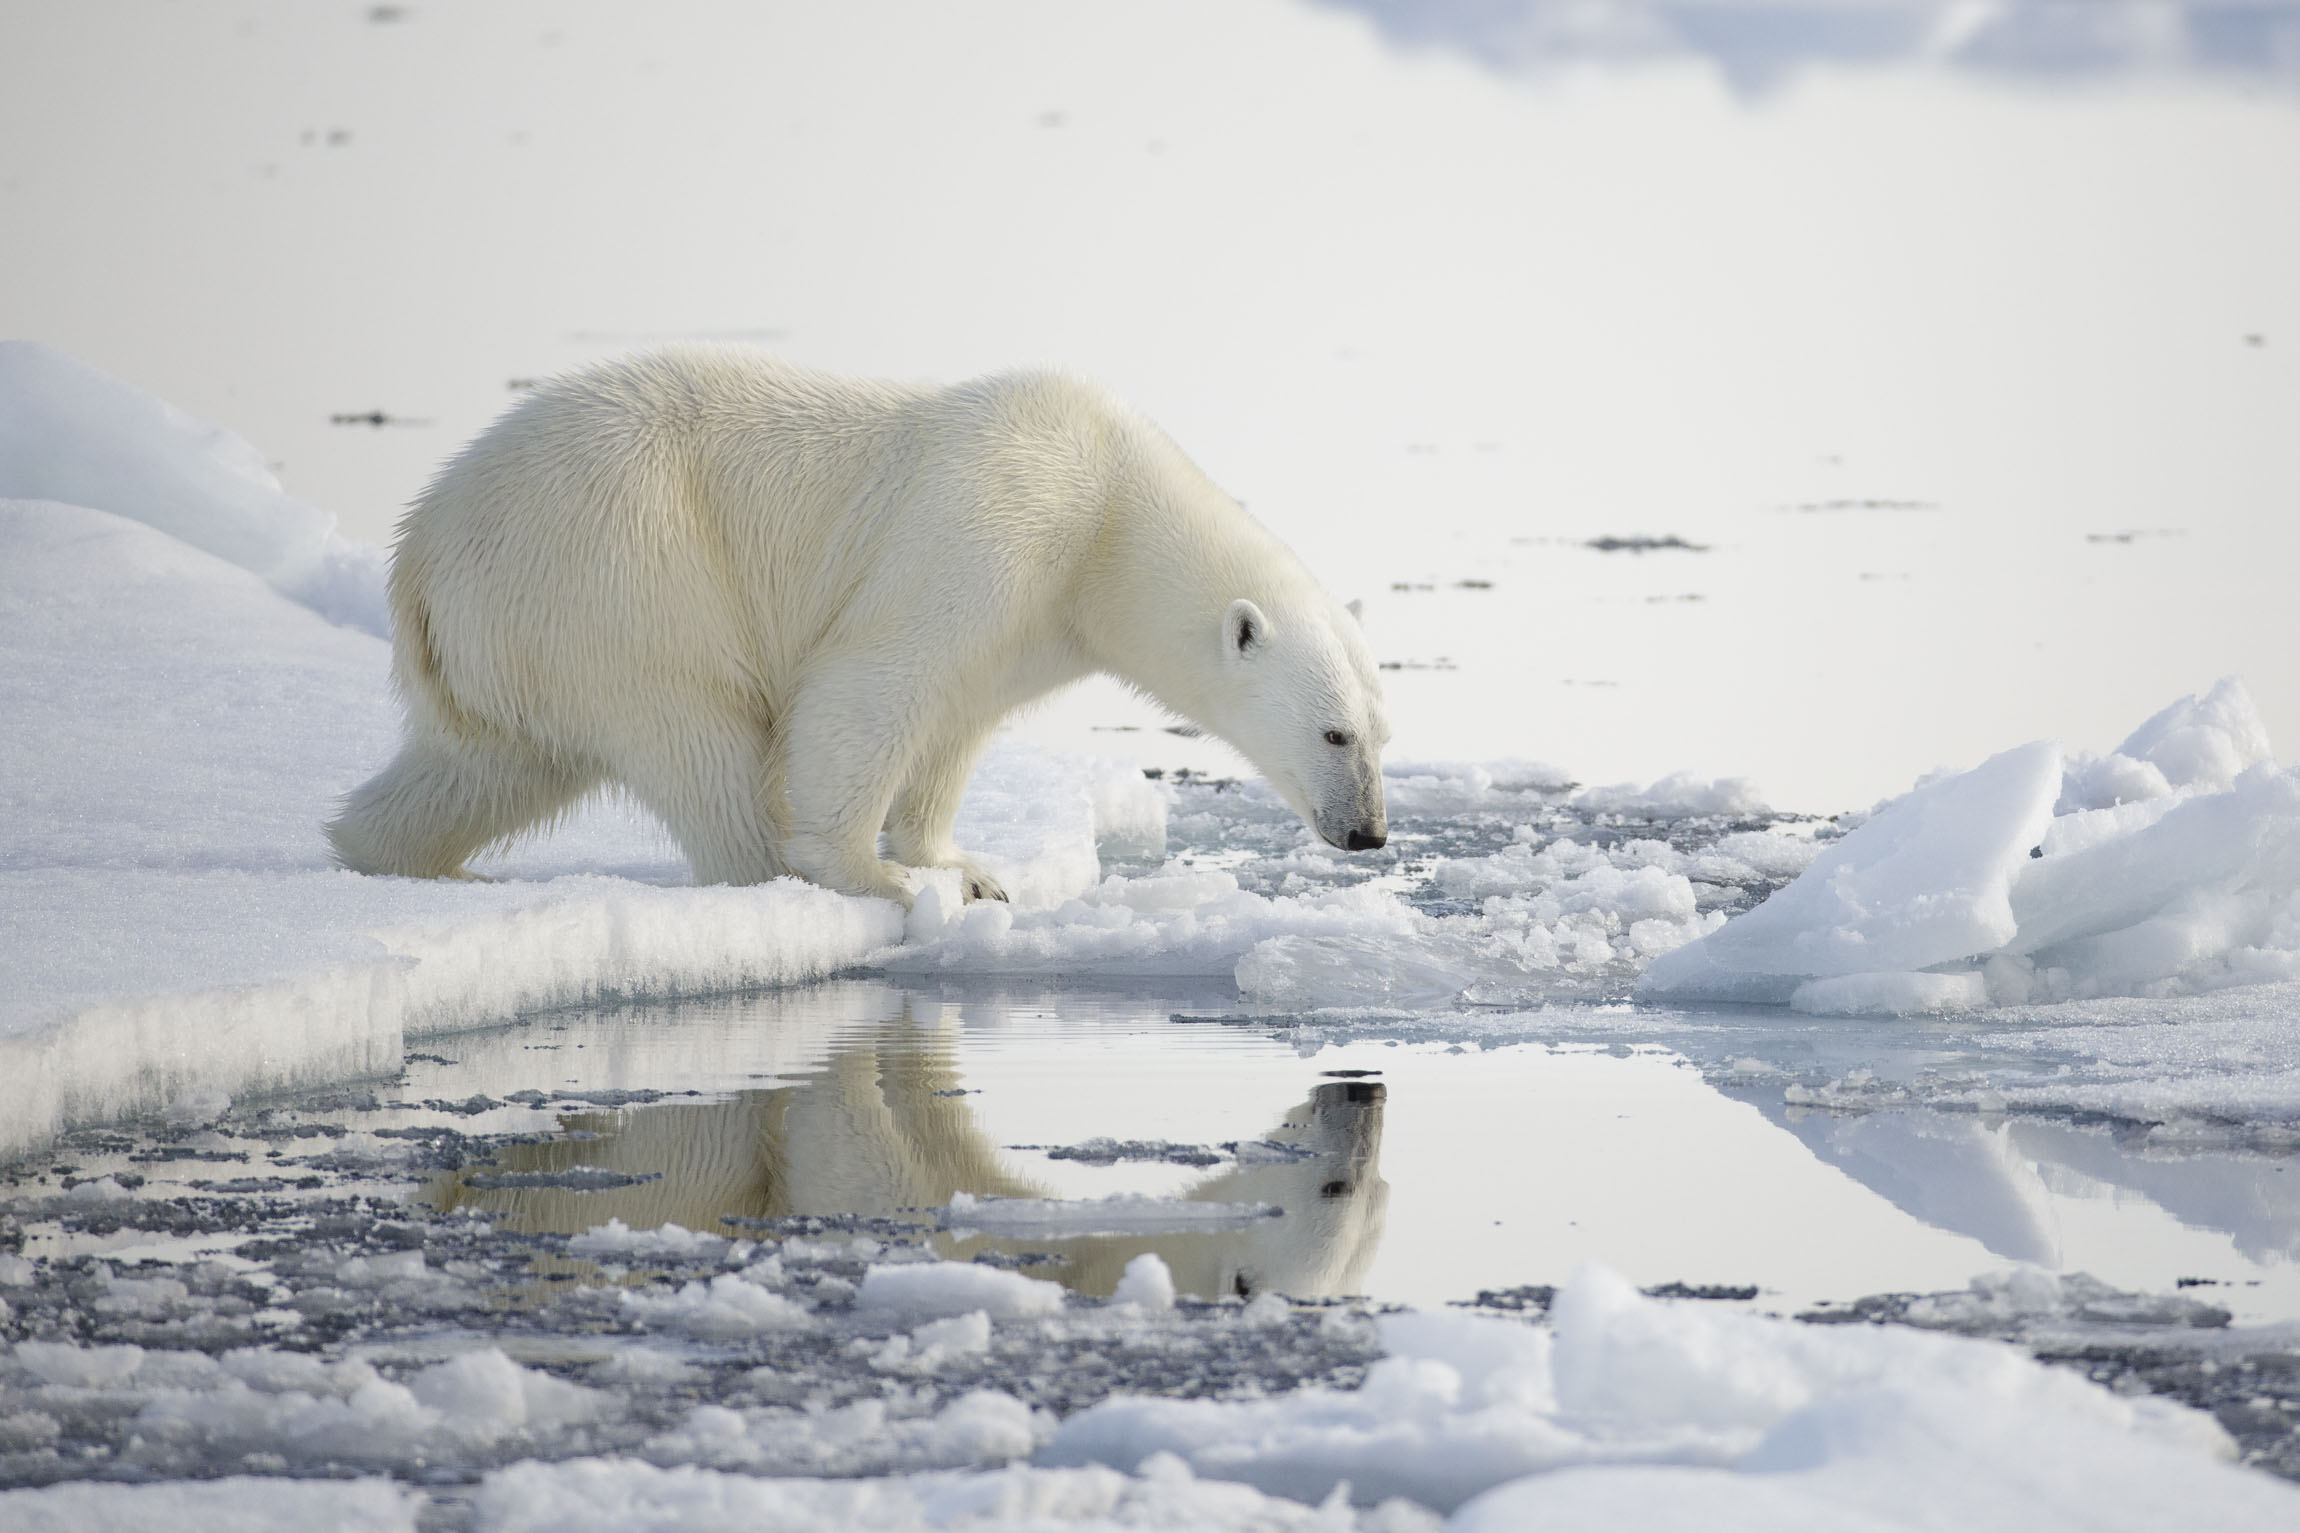 A polar bear sees its reflection in the water